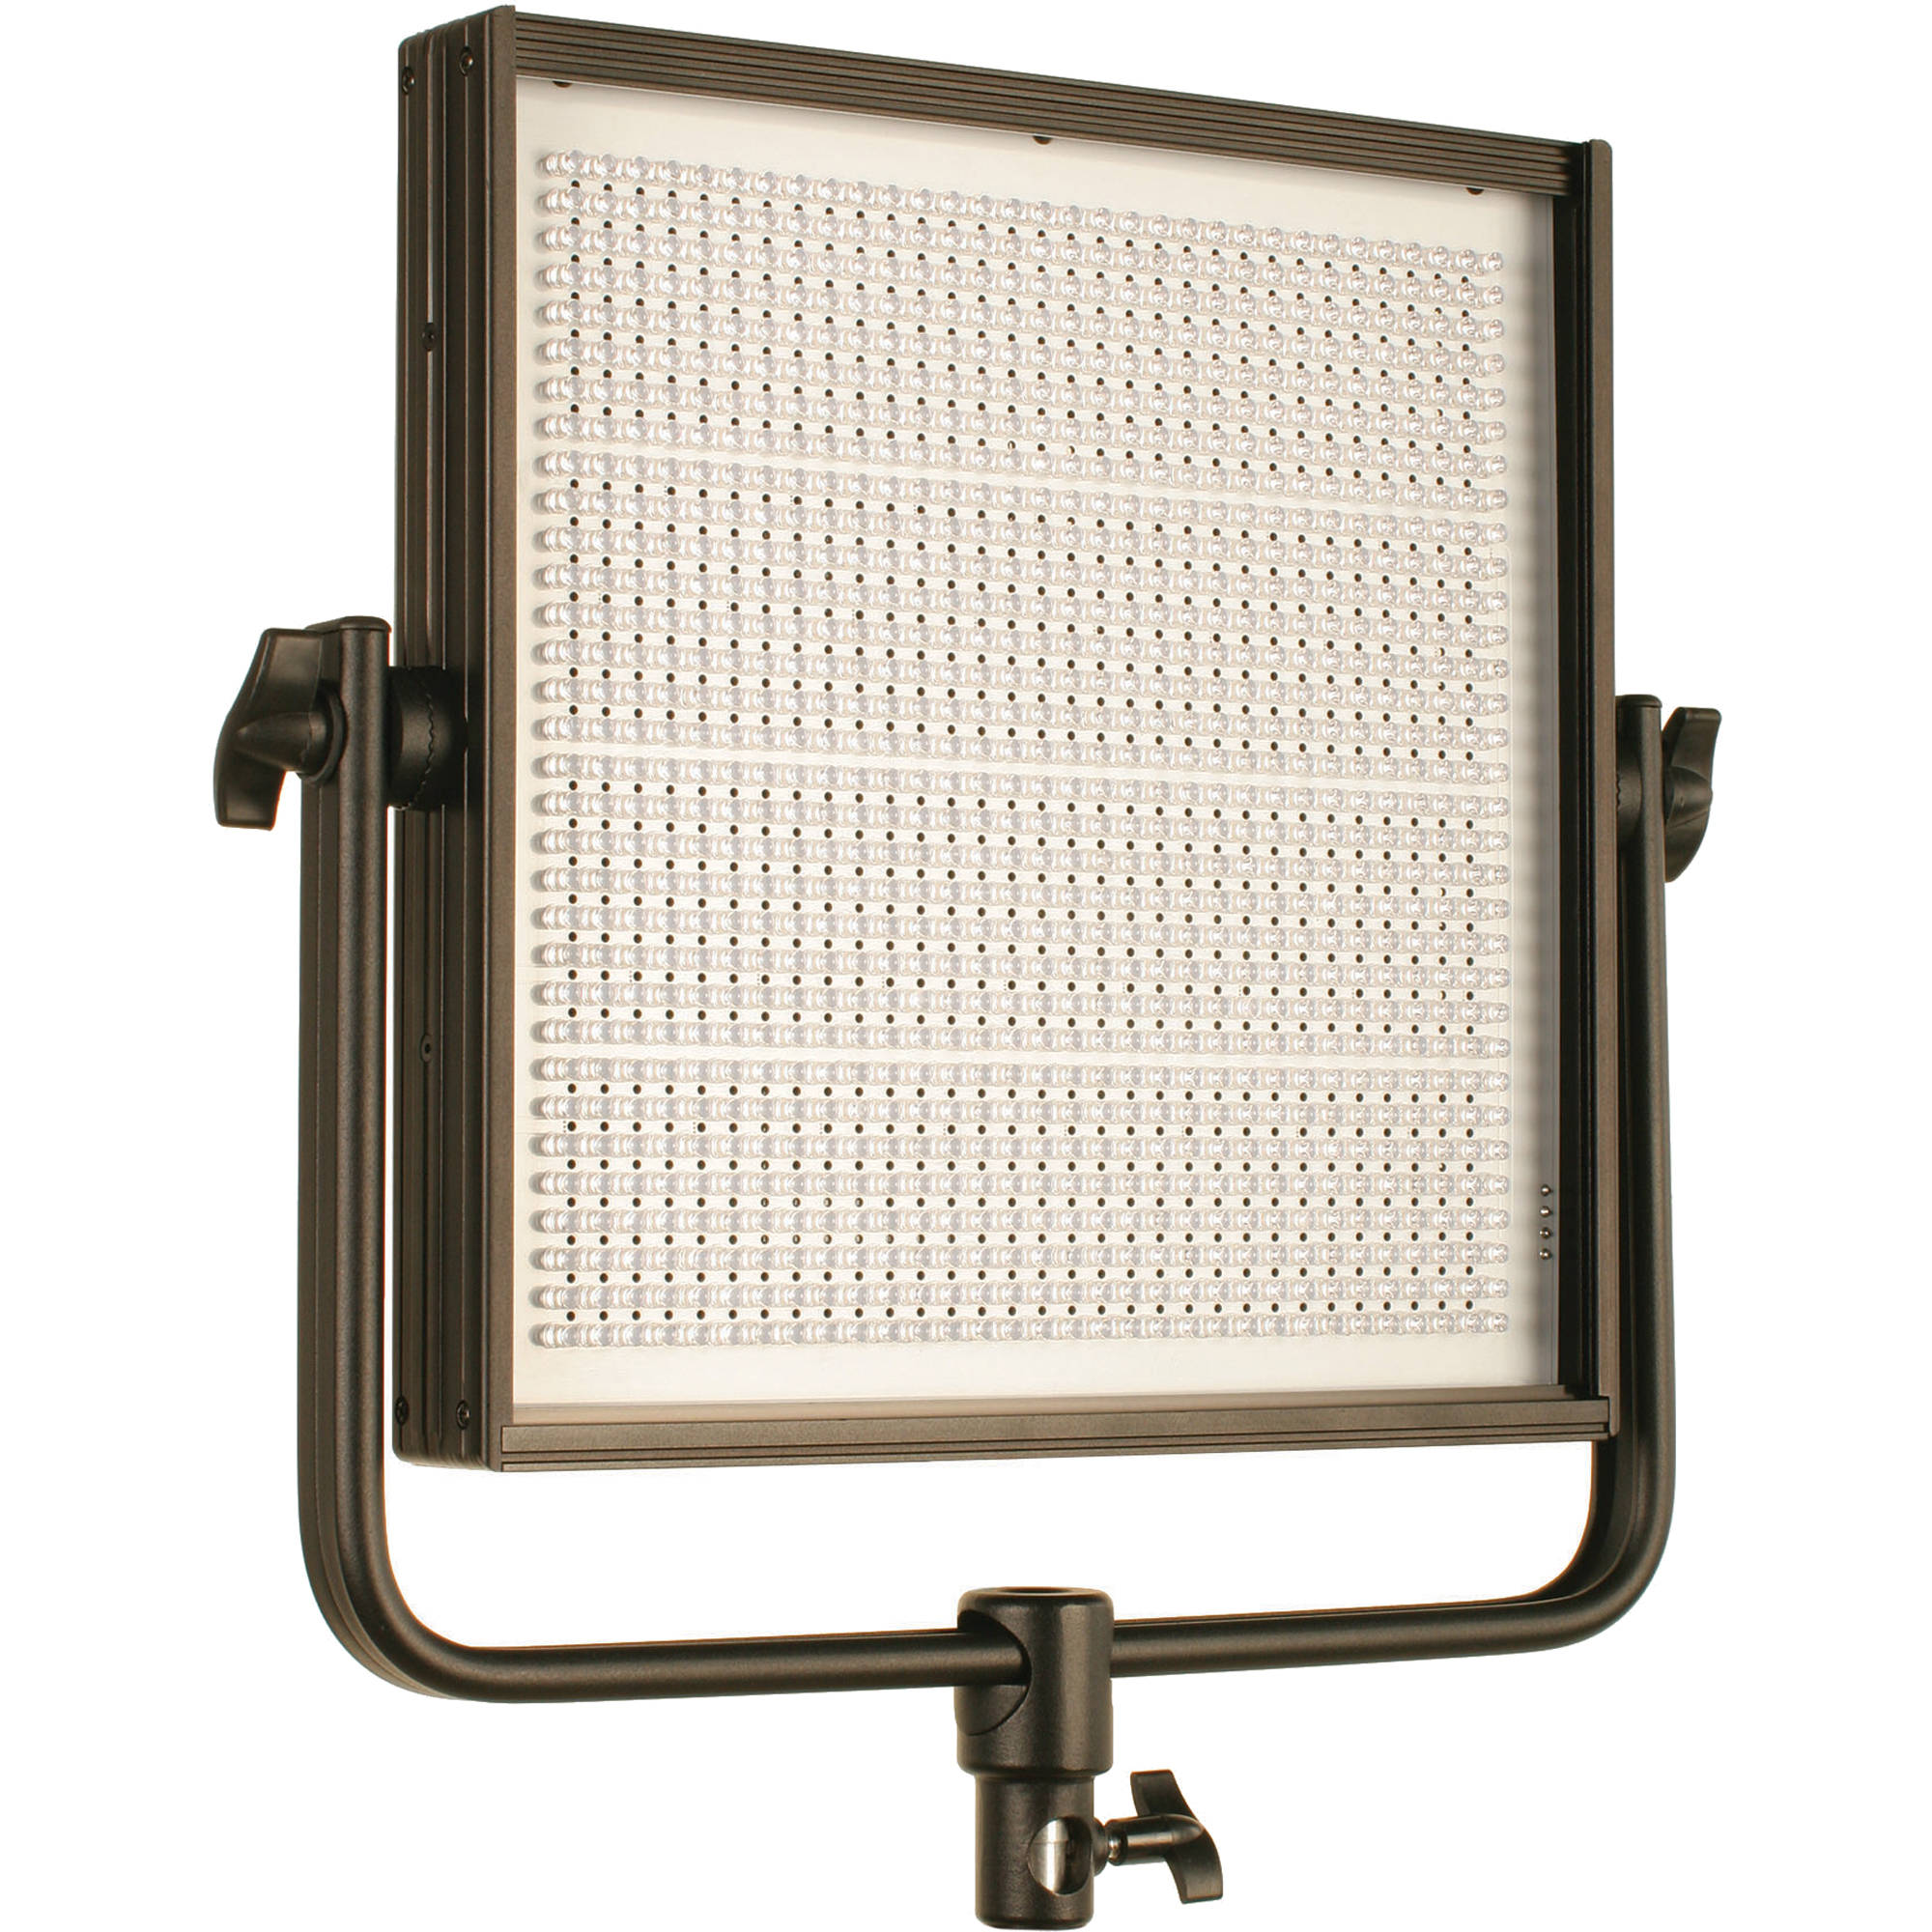 Cool Lux Cl1000dfg Daylight Pro Studio Led Flood Light With Gold Mount Battery Plate